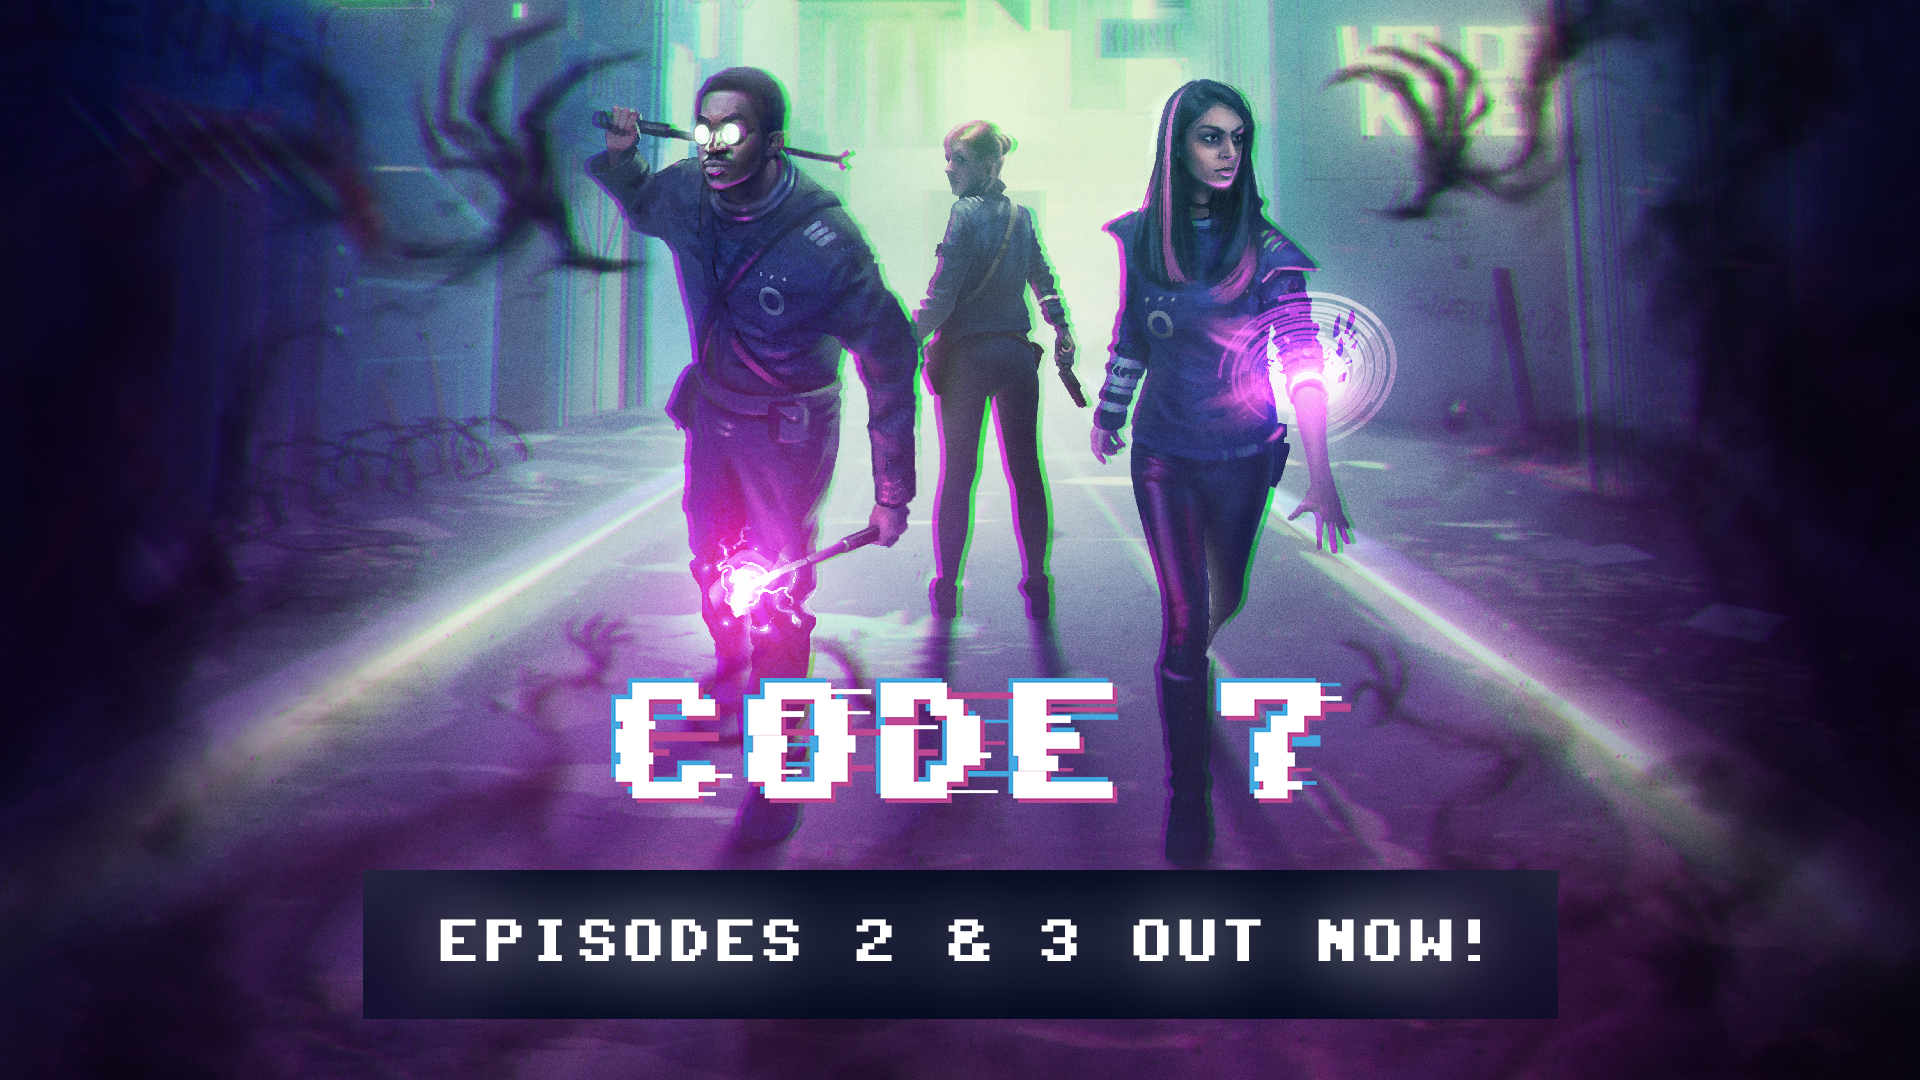 Code 7 - Episodes 2 & 3 Available Now